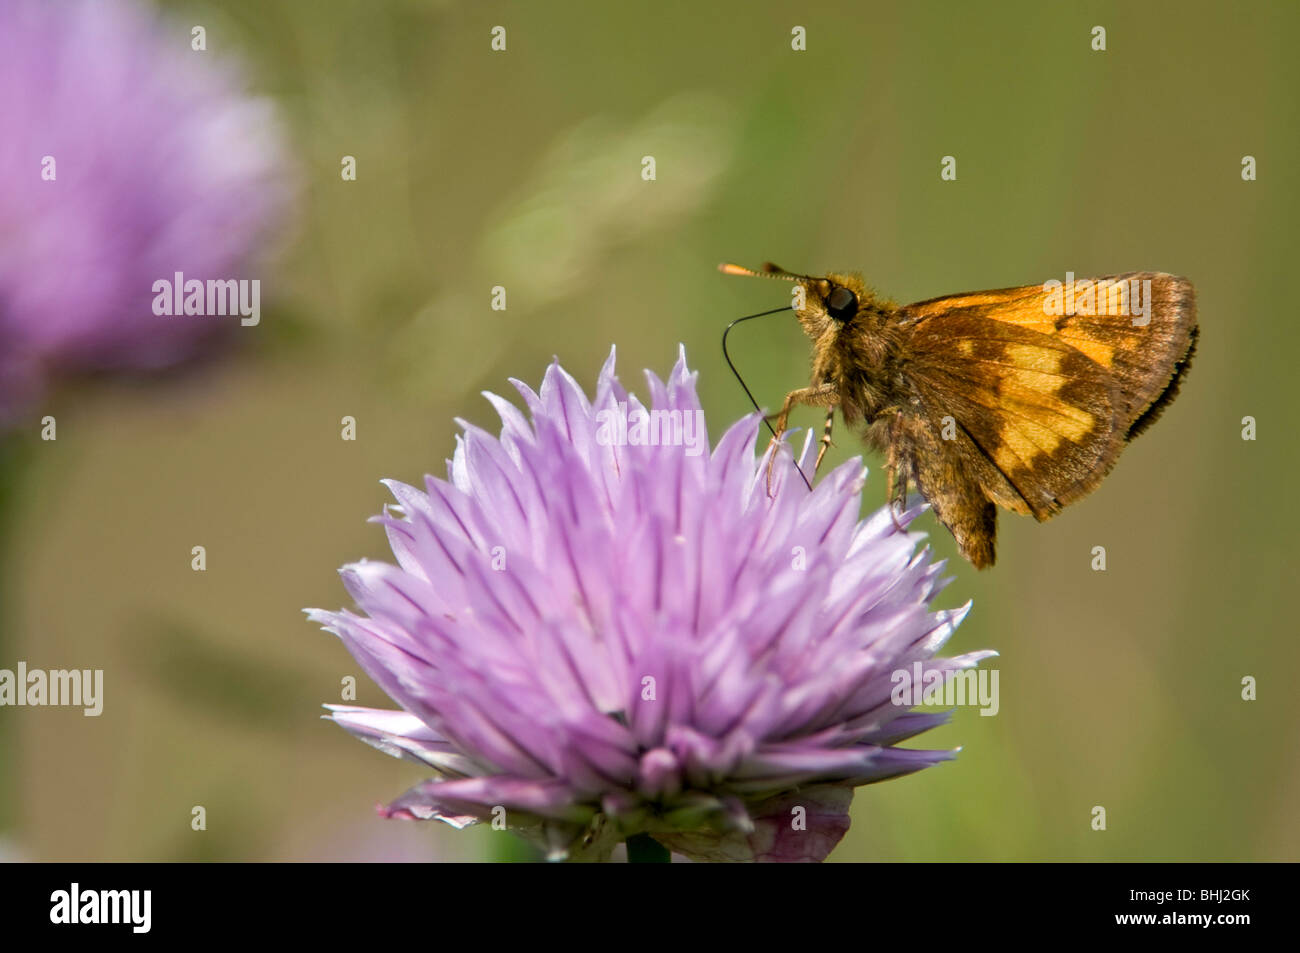 Skipper butterfly Nectaring on chive flowers - Stock Image